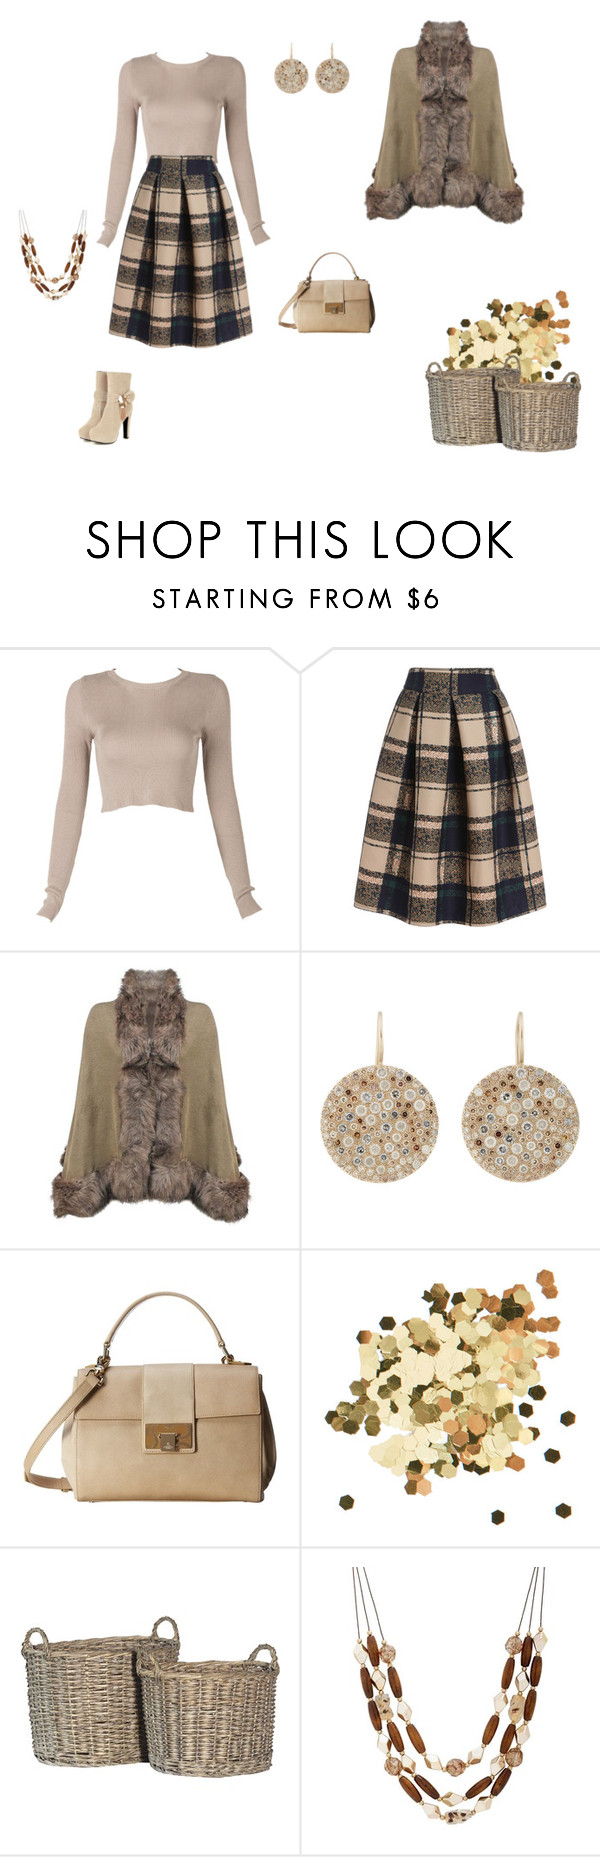 """""""Plaid skirt"""" by lle00000 ❤ liked on Polyvore featuring Roberto Marroni, Vivienne Westwood, Topshop and Betty Jackson"""